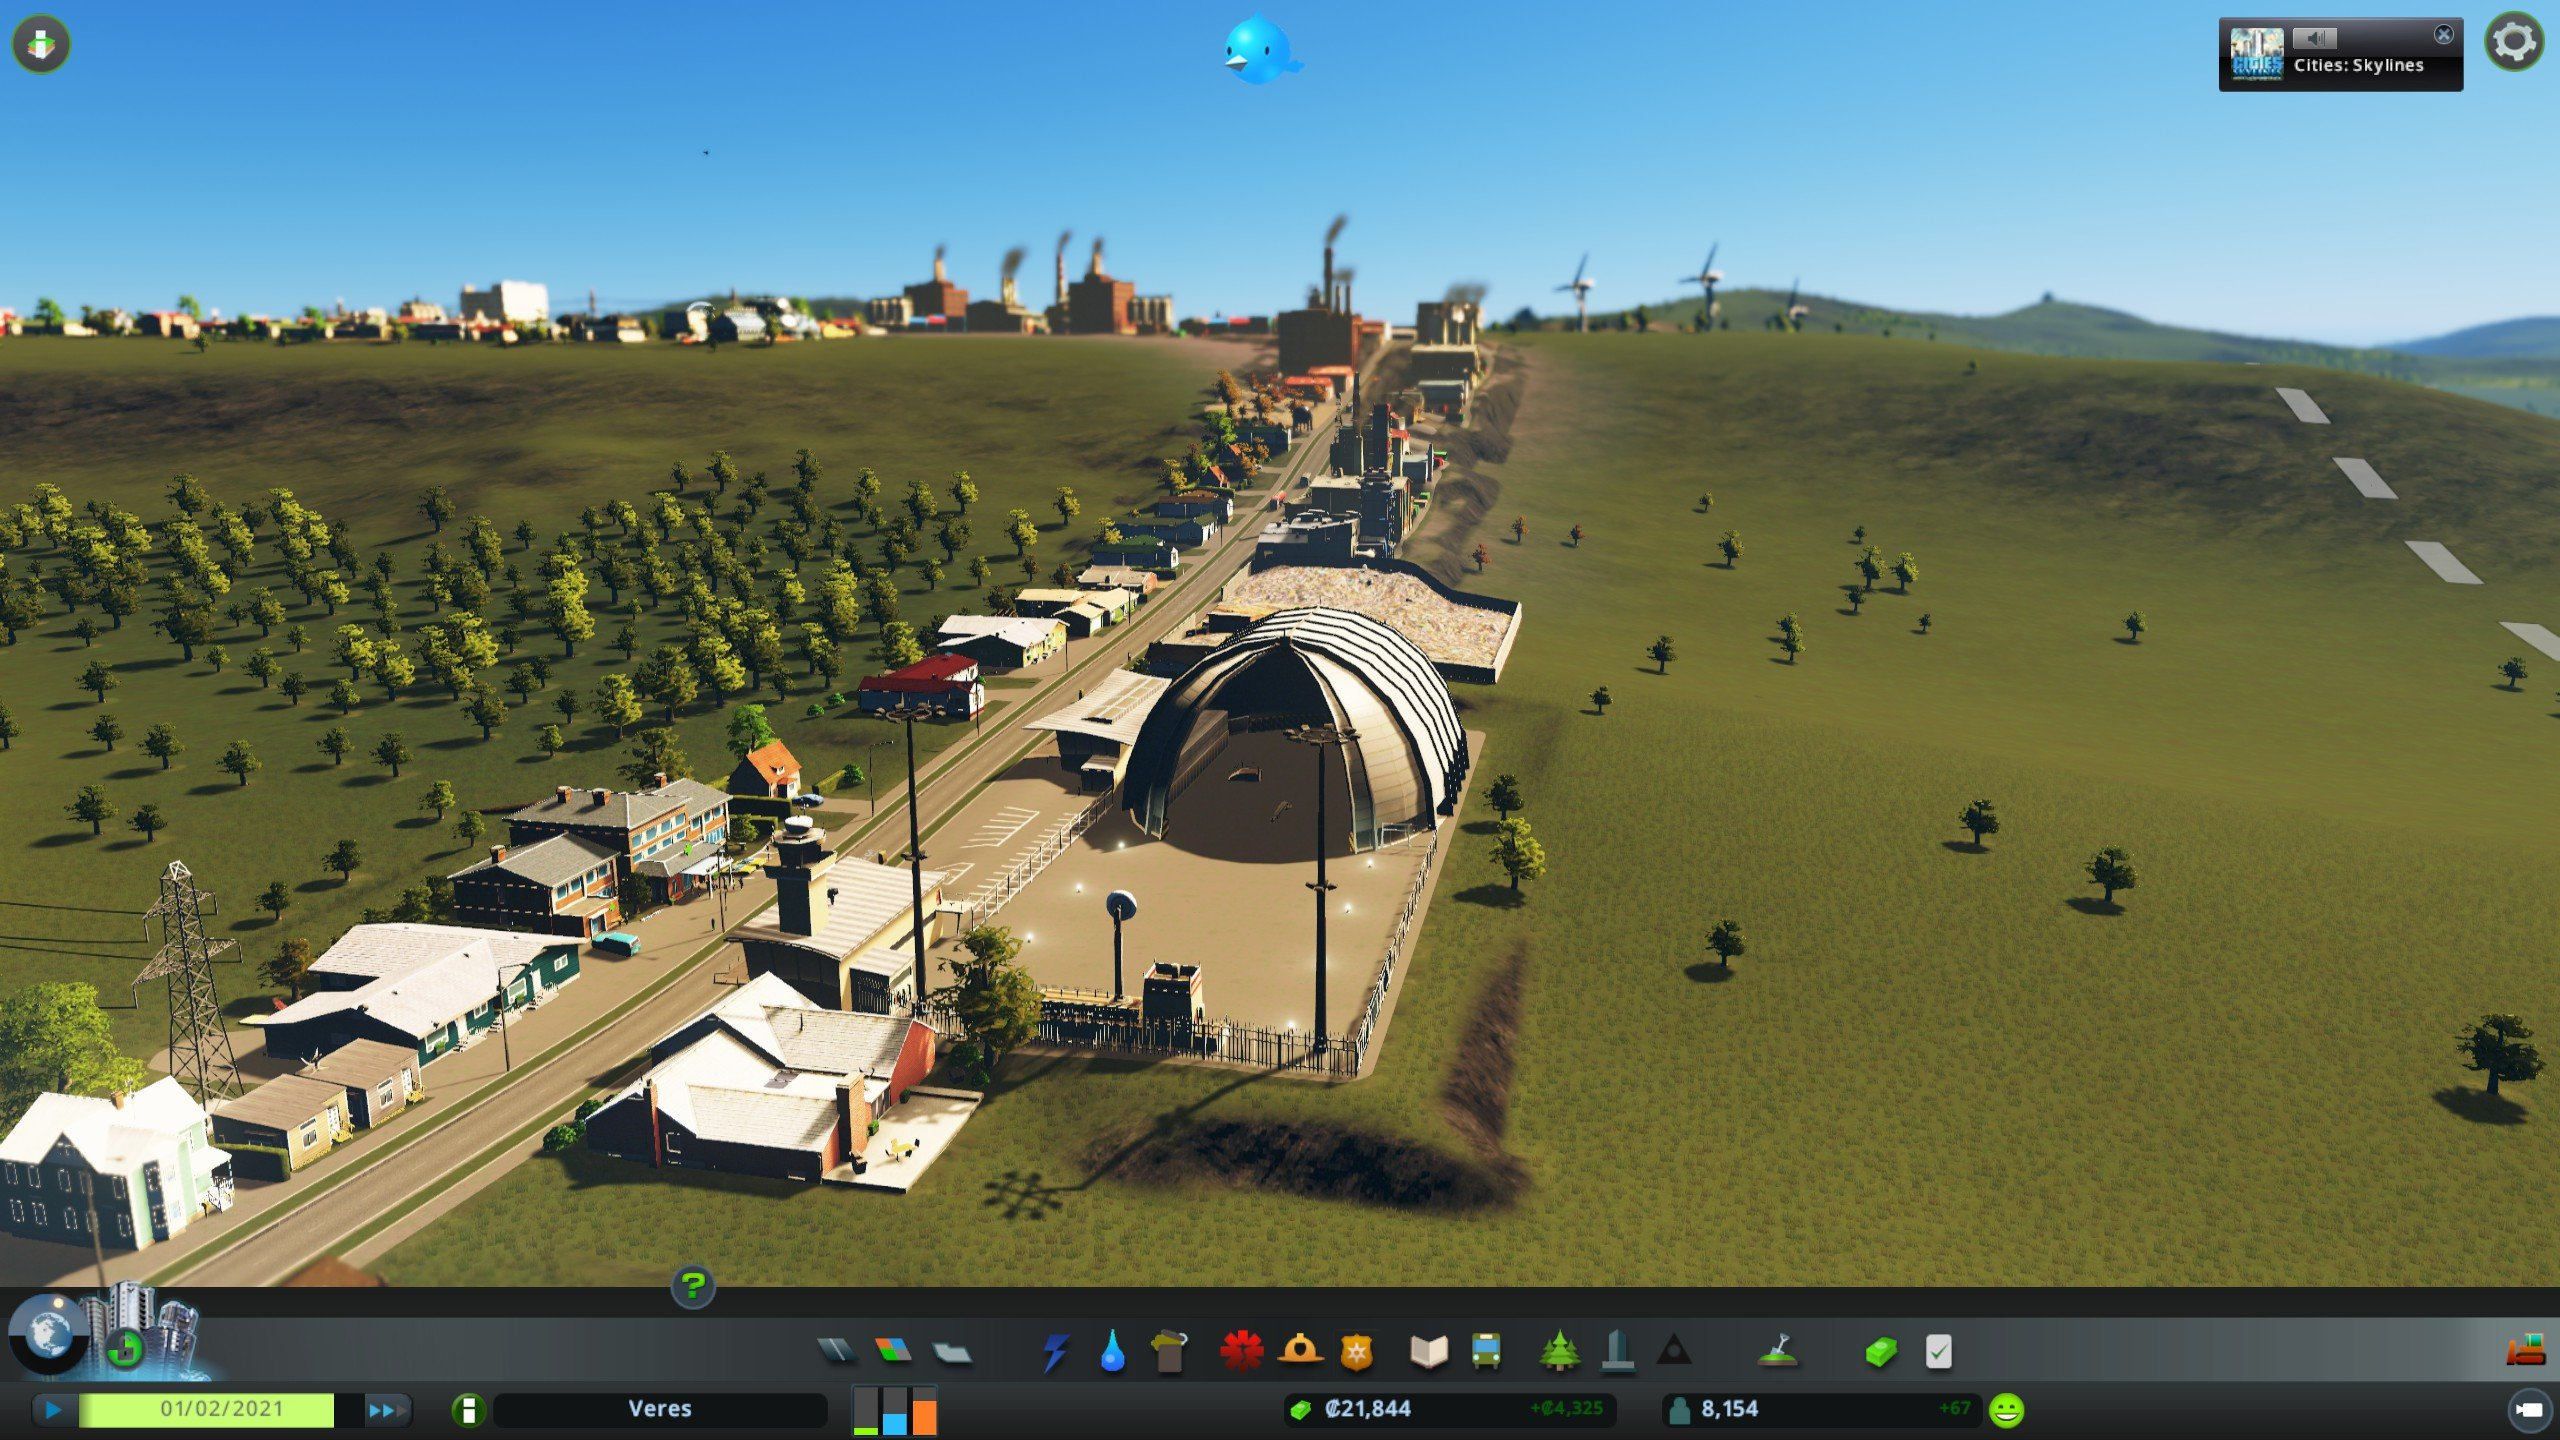 Mass Transit makes Cities: Skylines even more beautiful